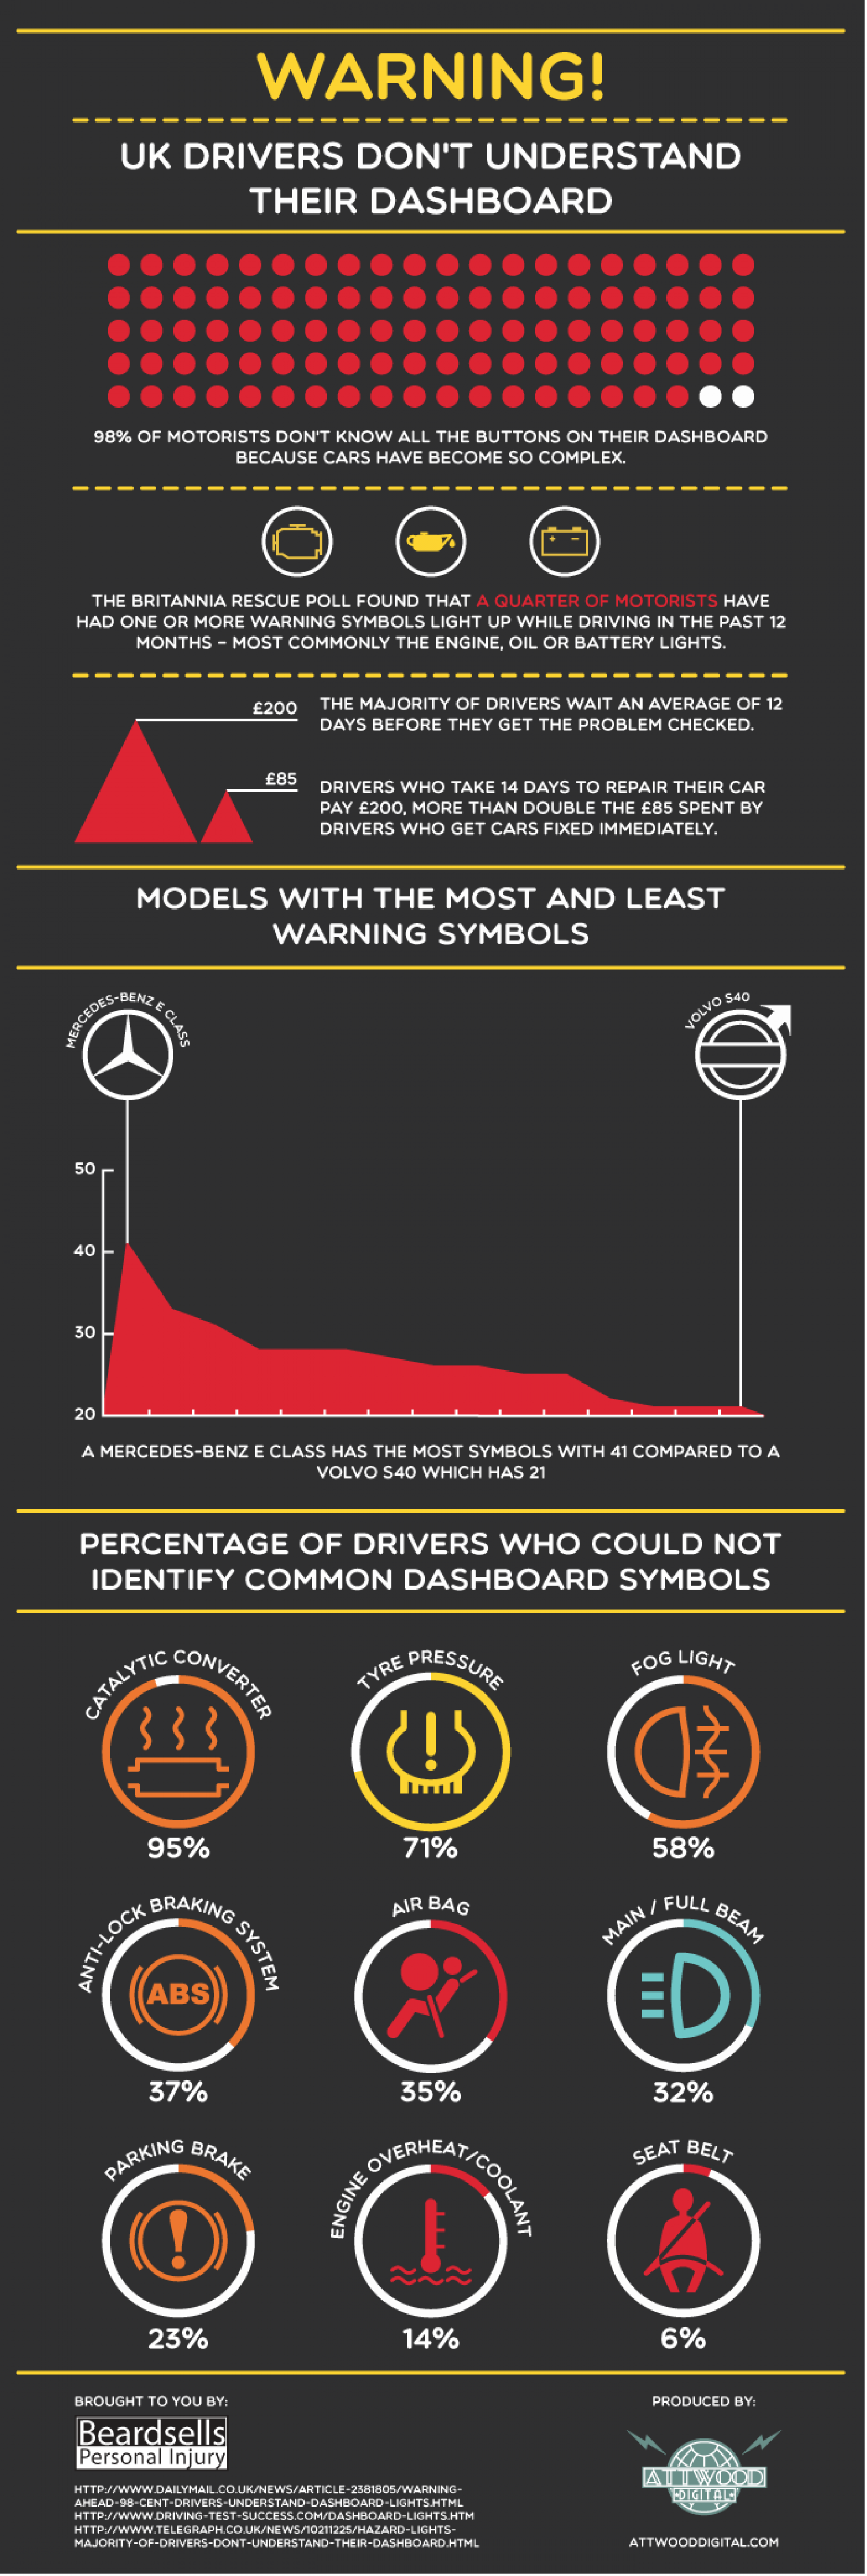 WARNING! UK Drivers Don't Understand Their Dashboard Infographic